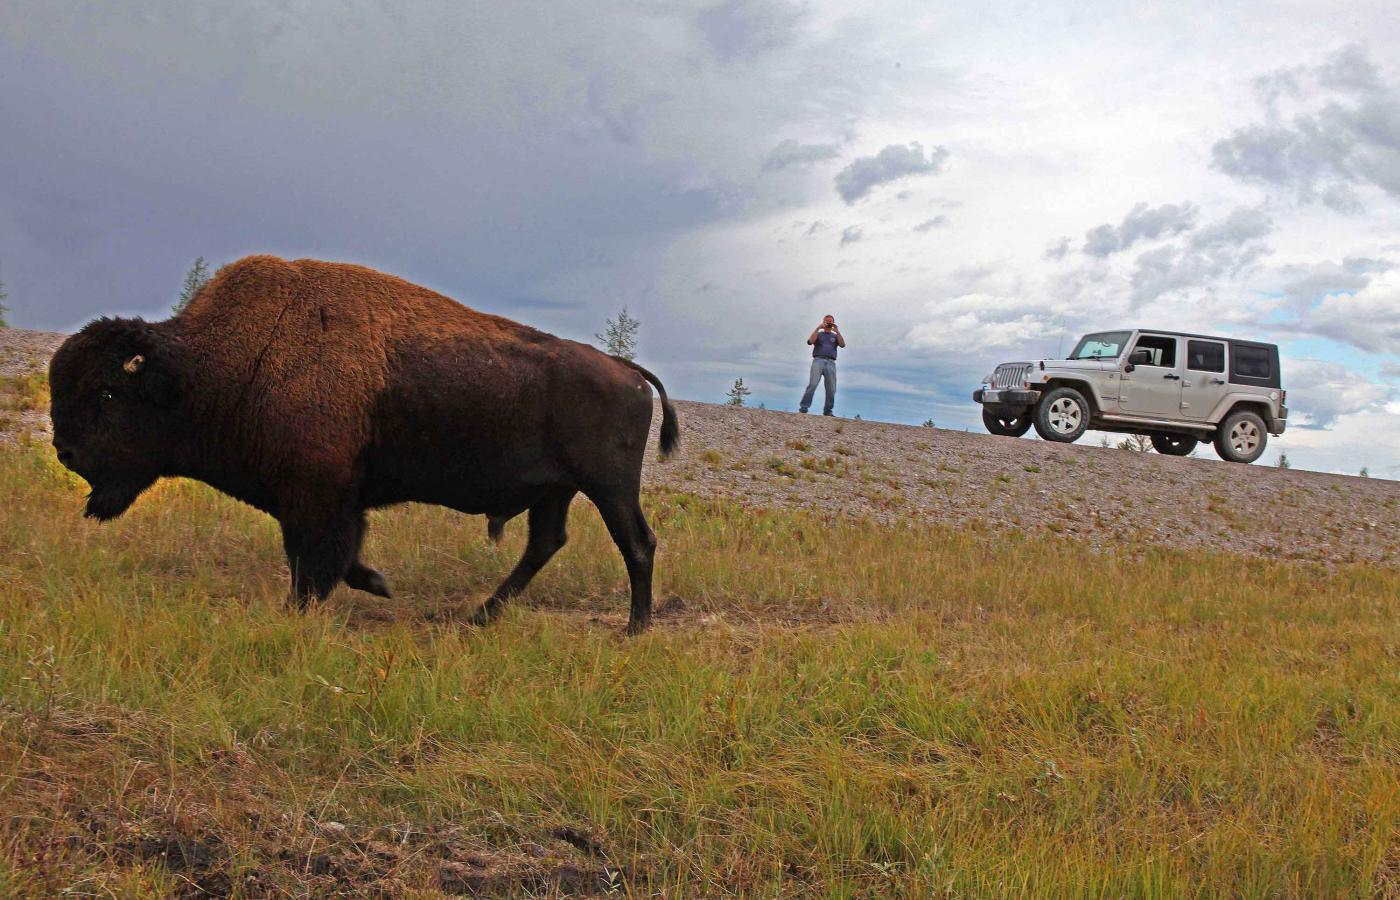 A big bison on the side of the road in Canada's Northwest Territories